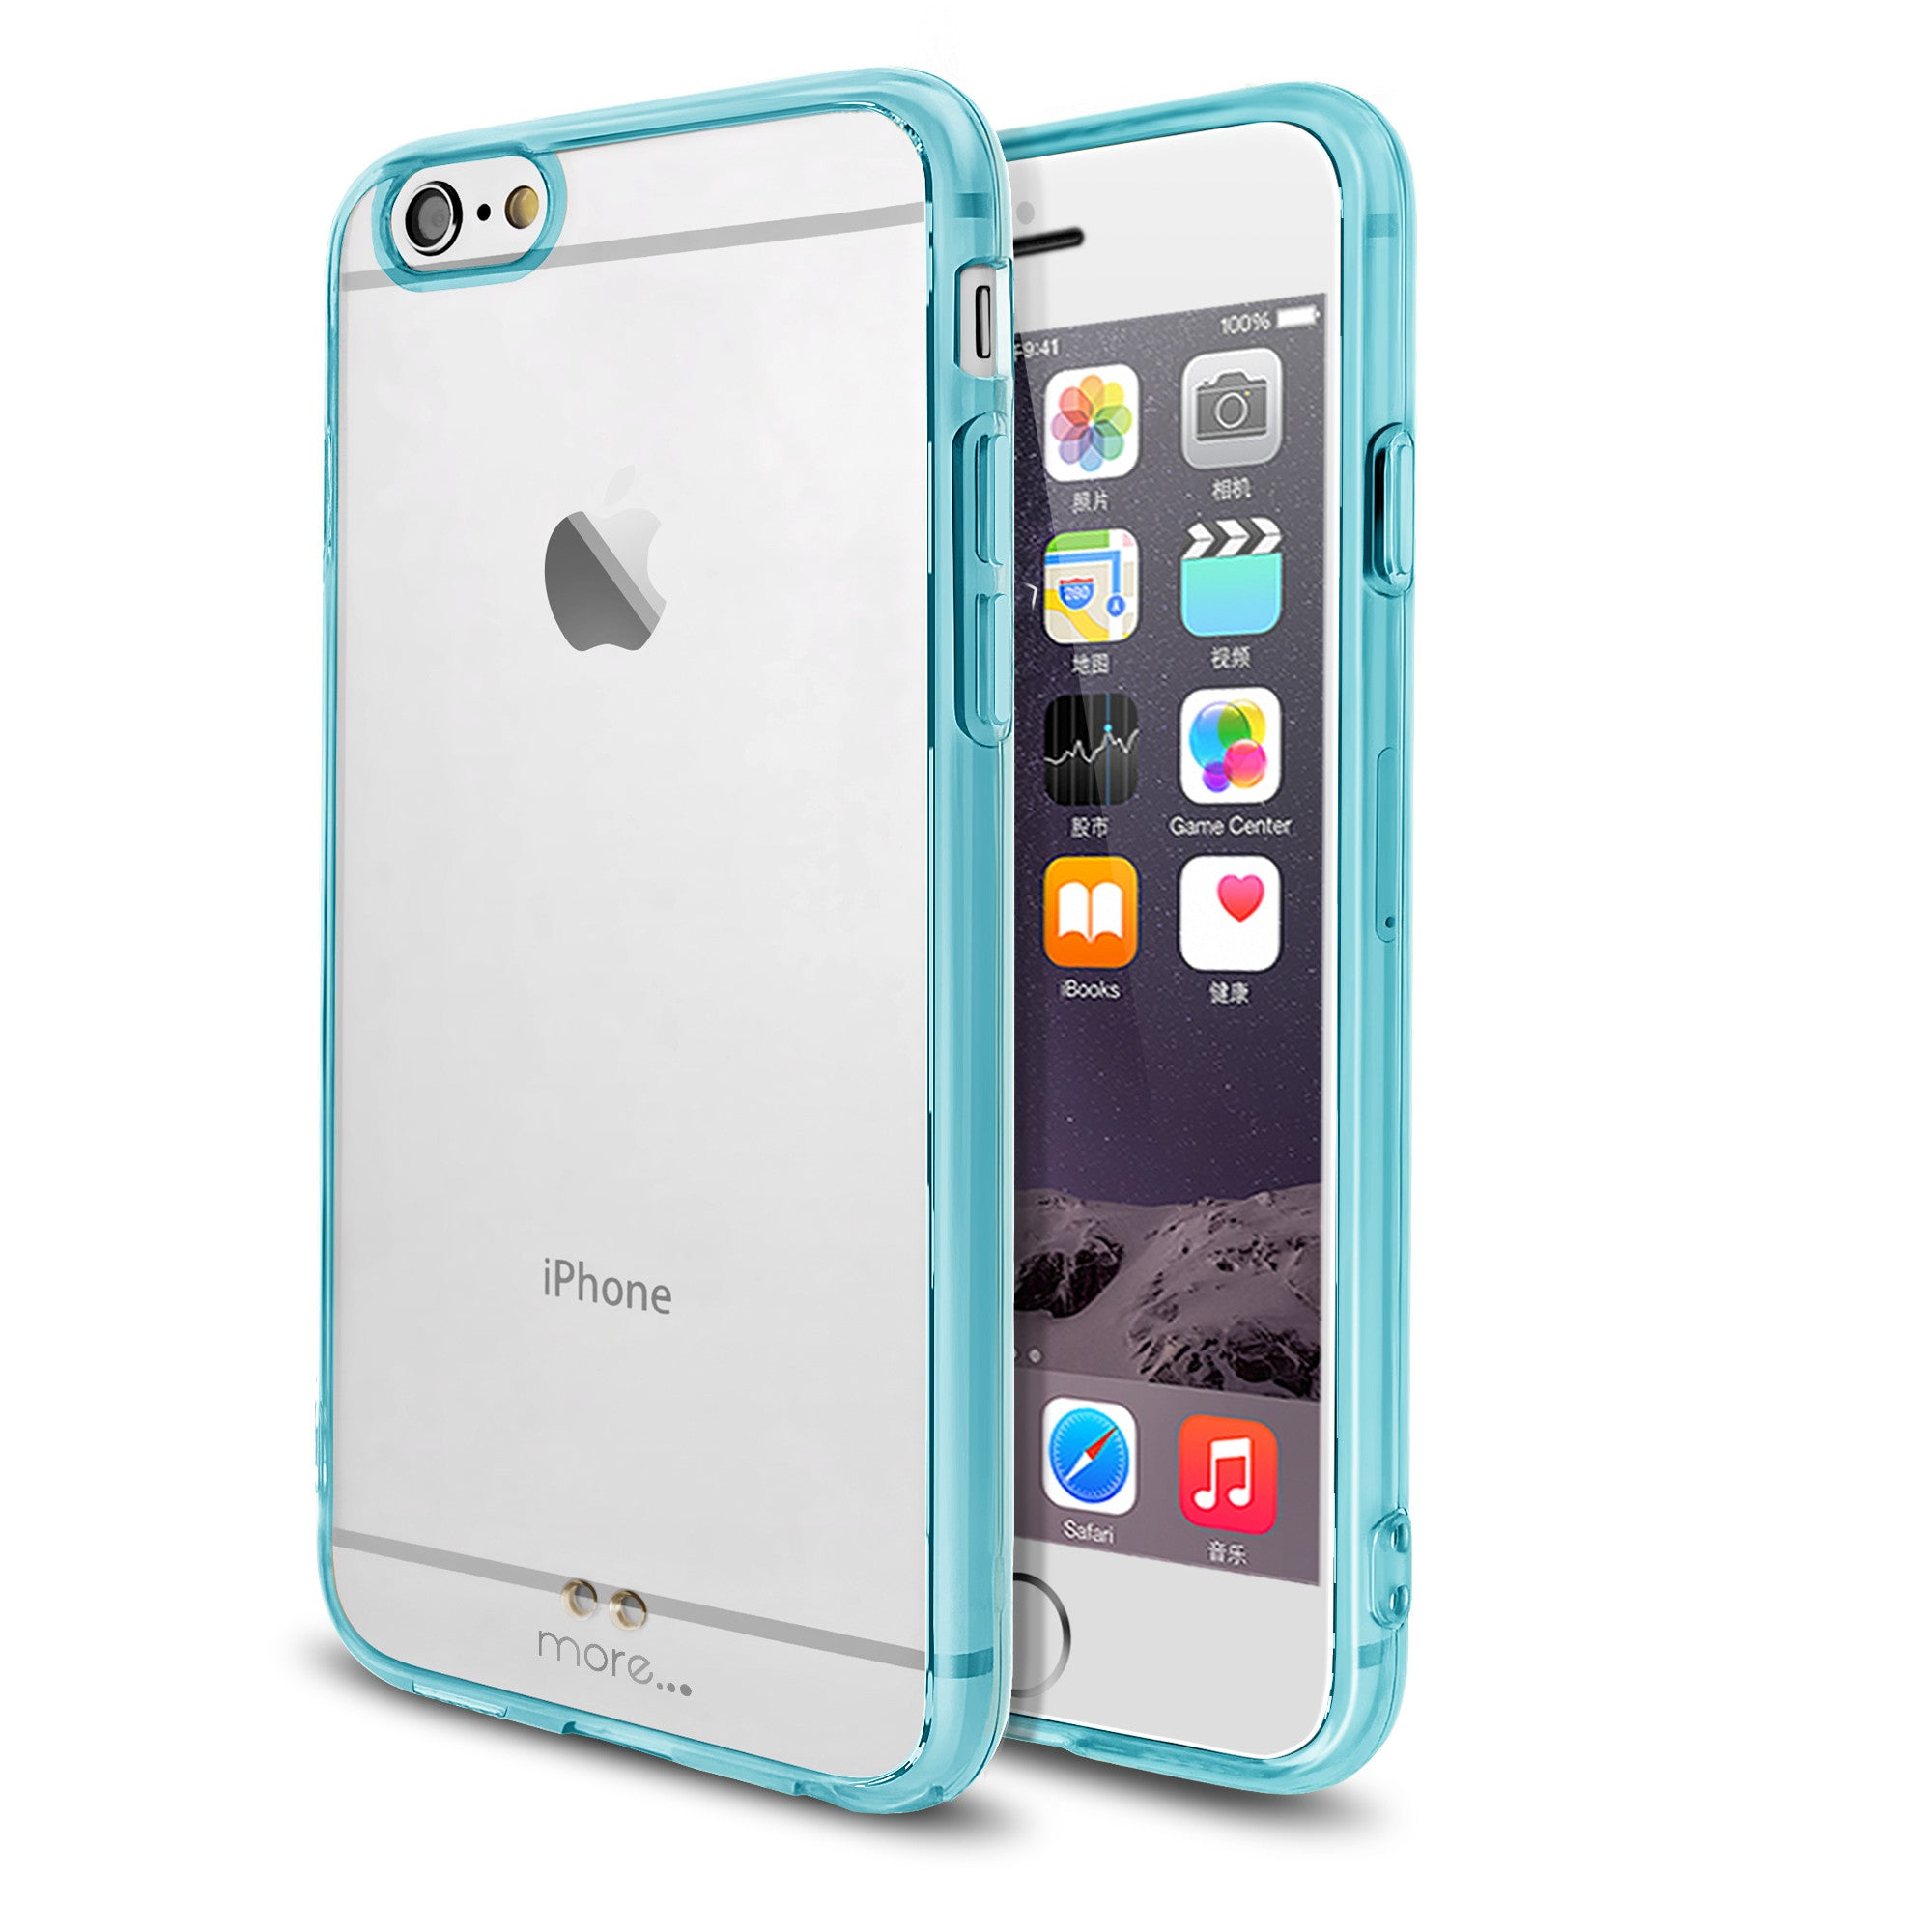 brand new c1311 a0247 More Ultra Thin BumperLicious Case + Clear Hard Back Series for iPhone 6S  Plus / iPhone 6 Plus